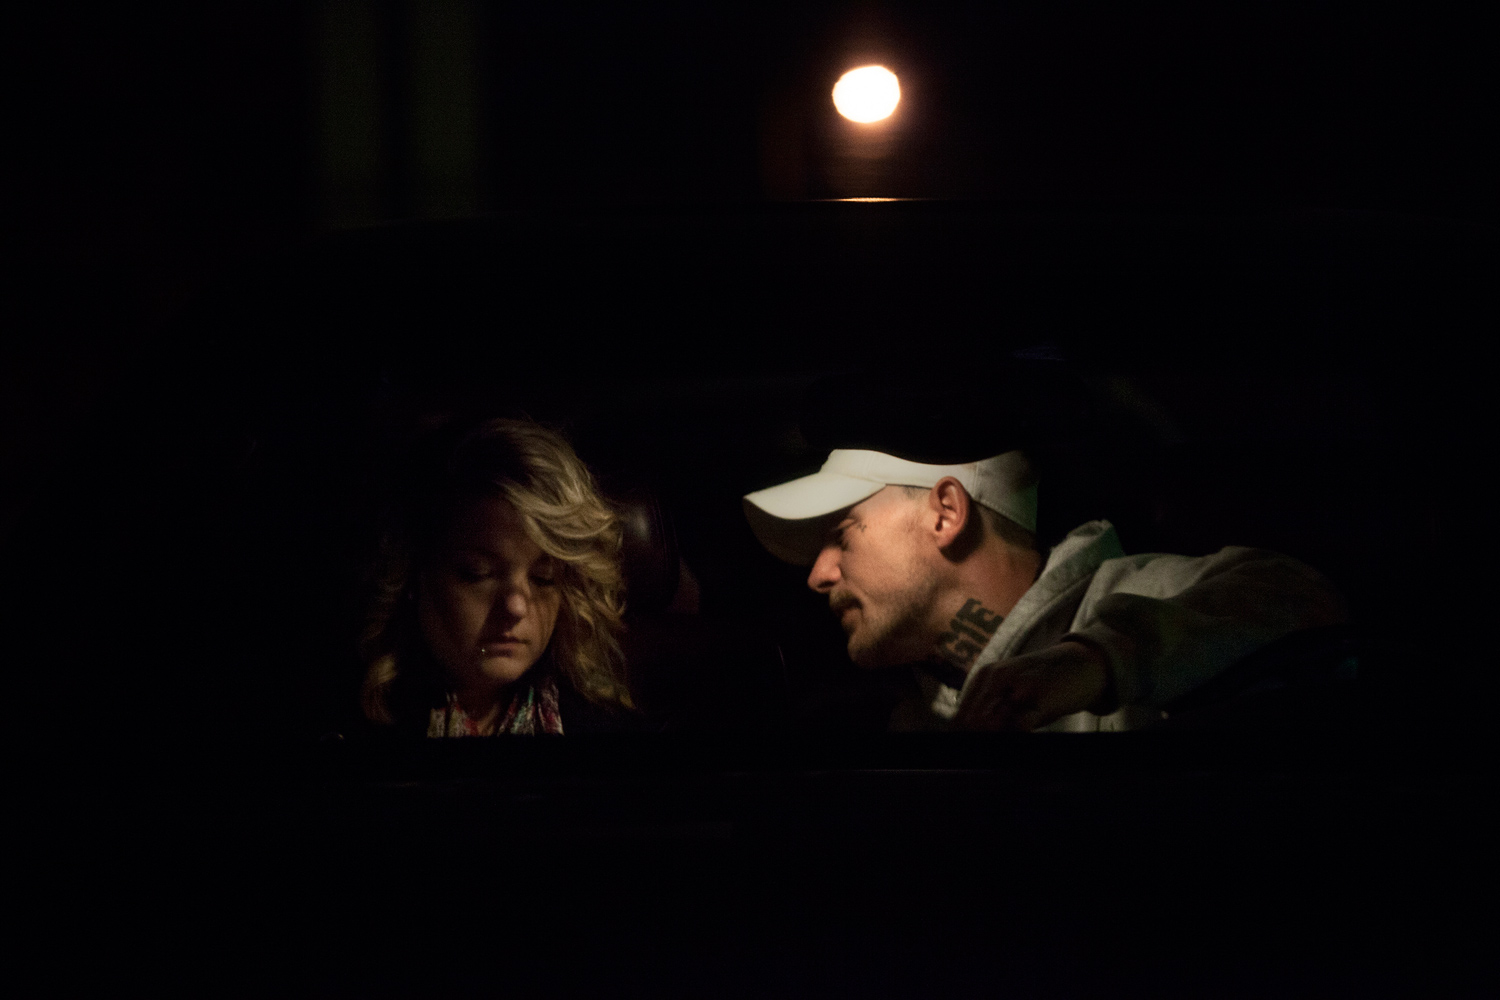 Shane and Maggie argued in their car. Maggie's inability to devote as much attention to Shane as she devoted to her children became a constant source of strife between the two.